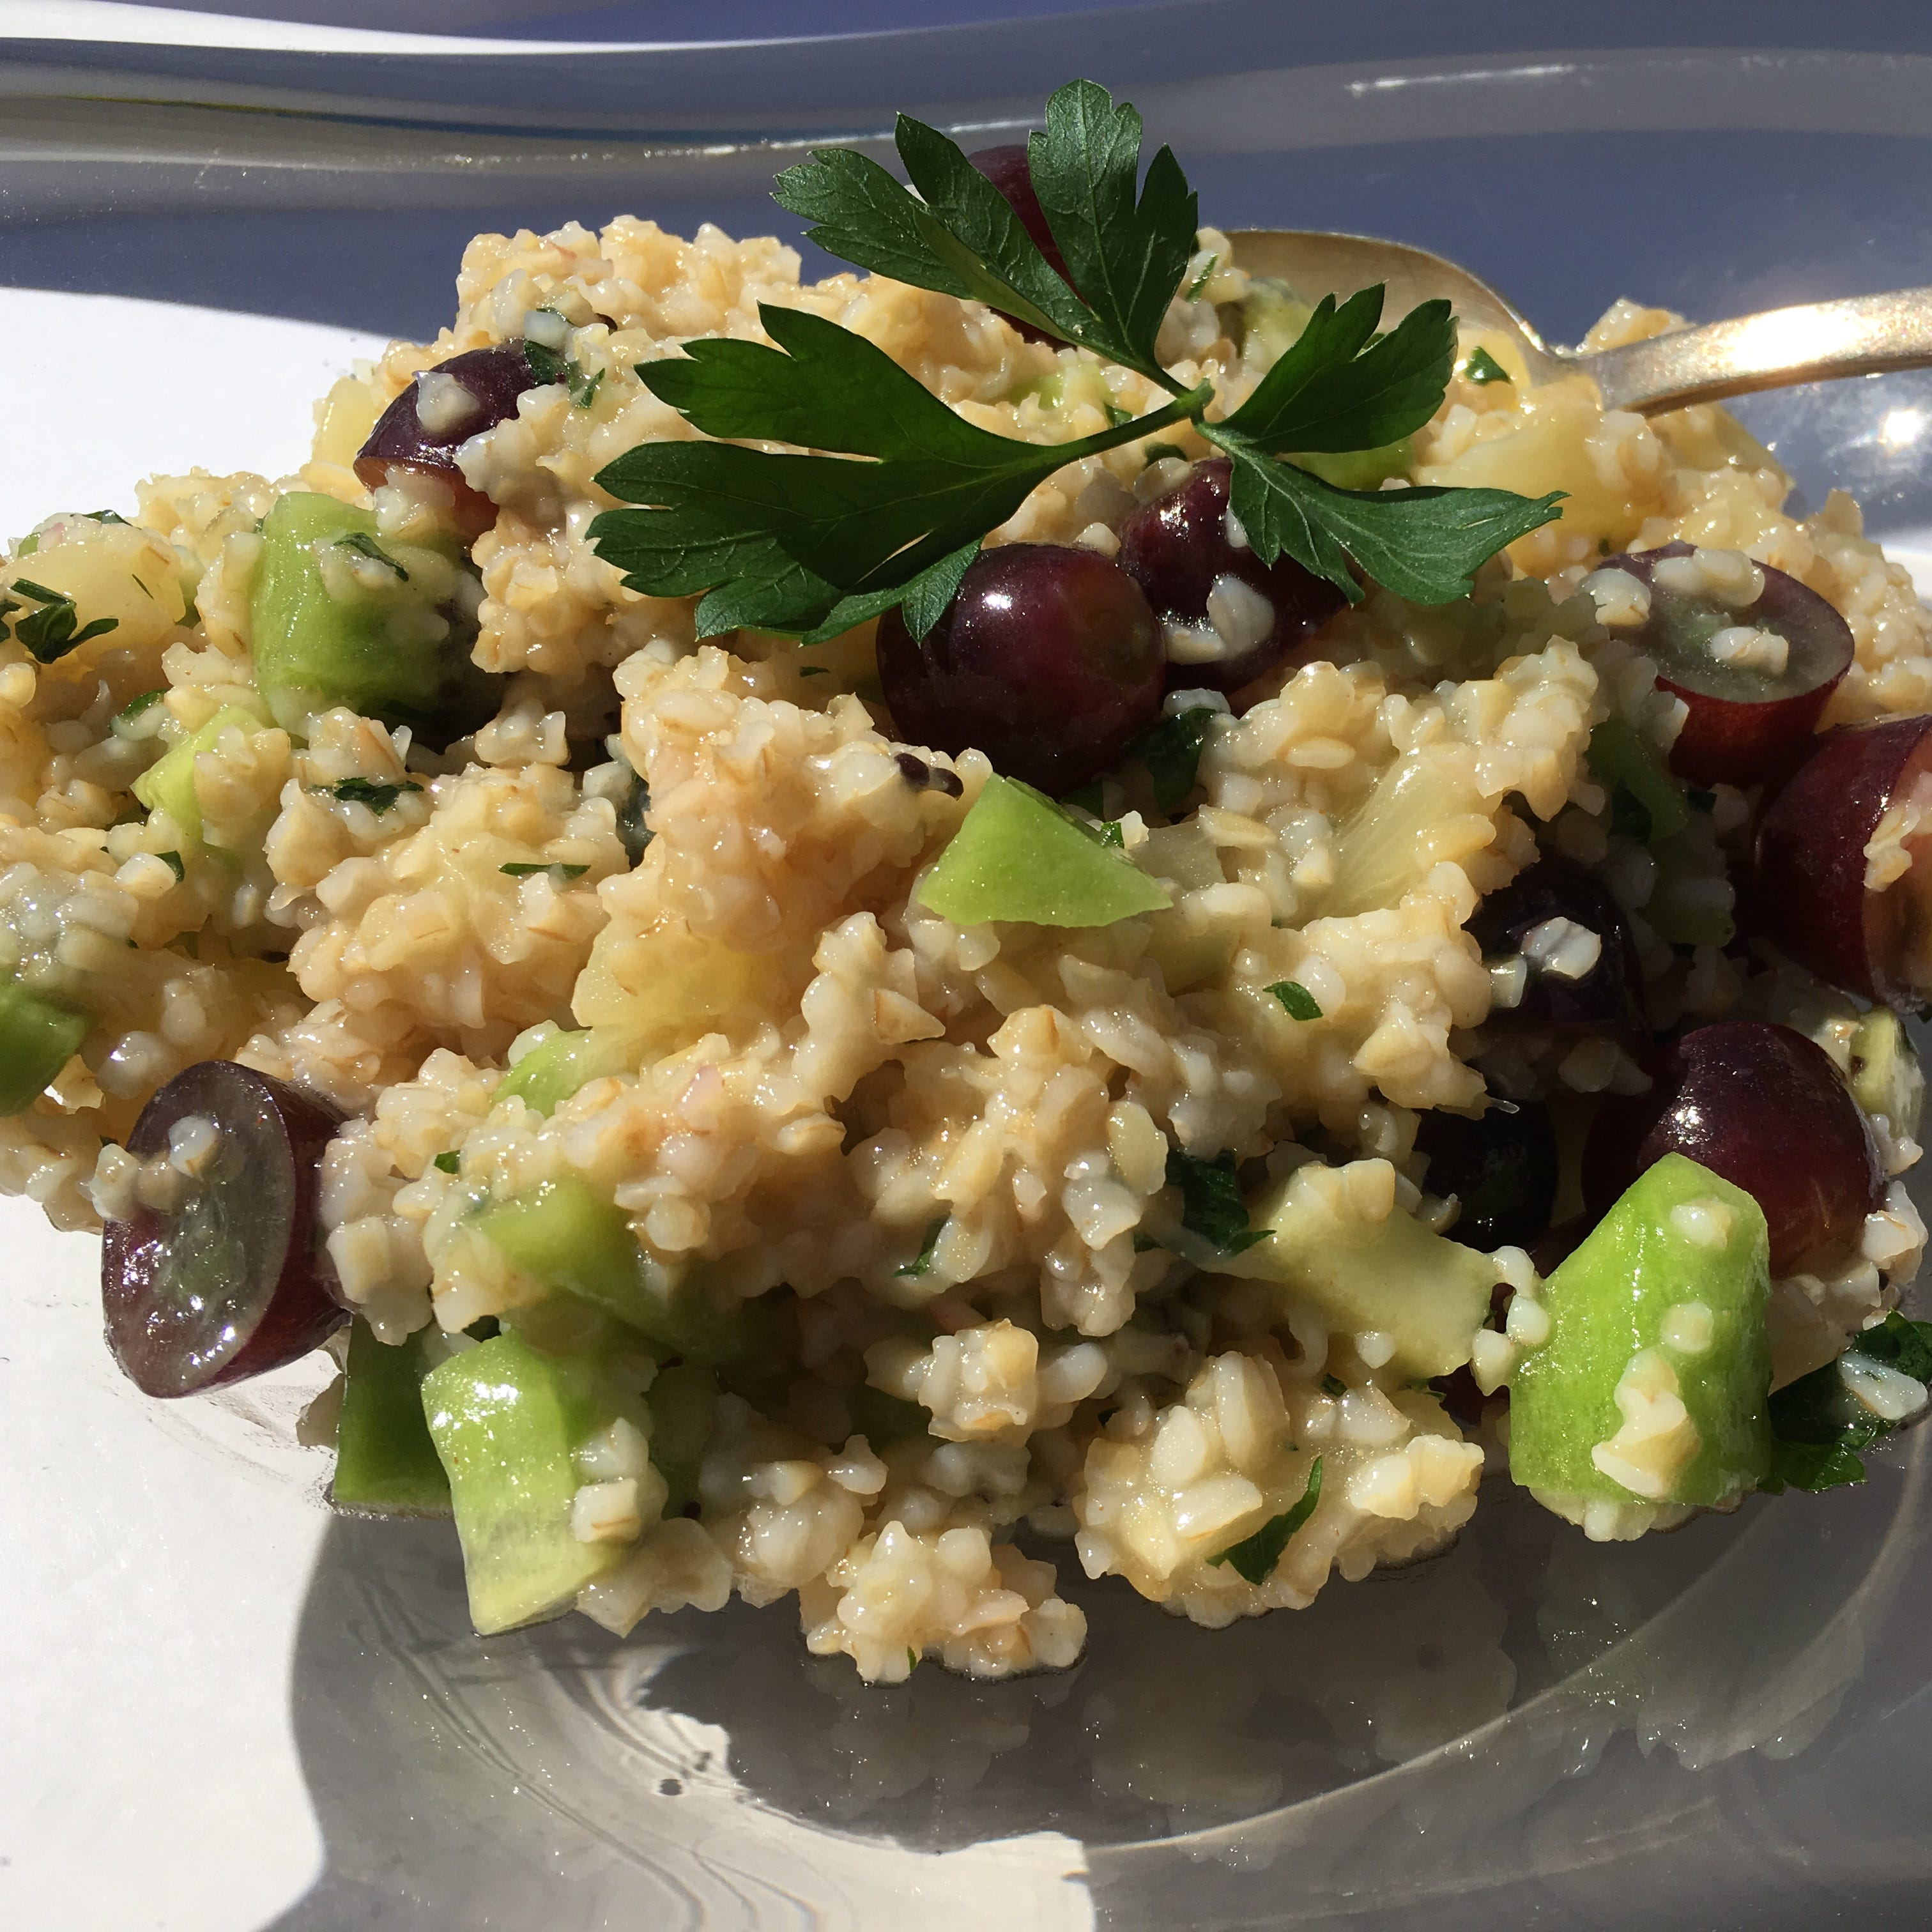 Fruity tabbouleh provides a healthy dose of fiber